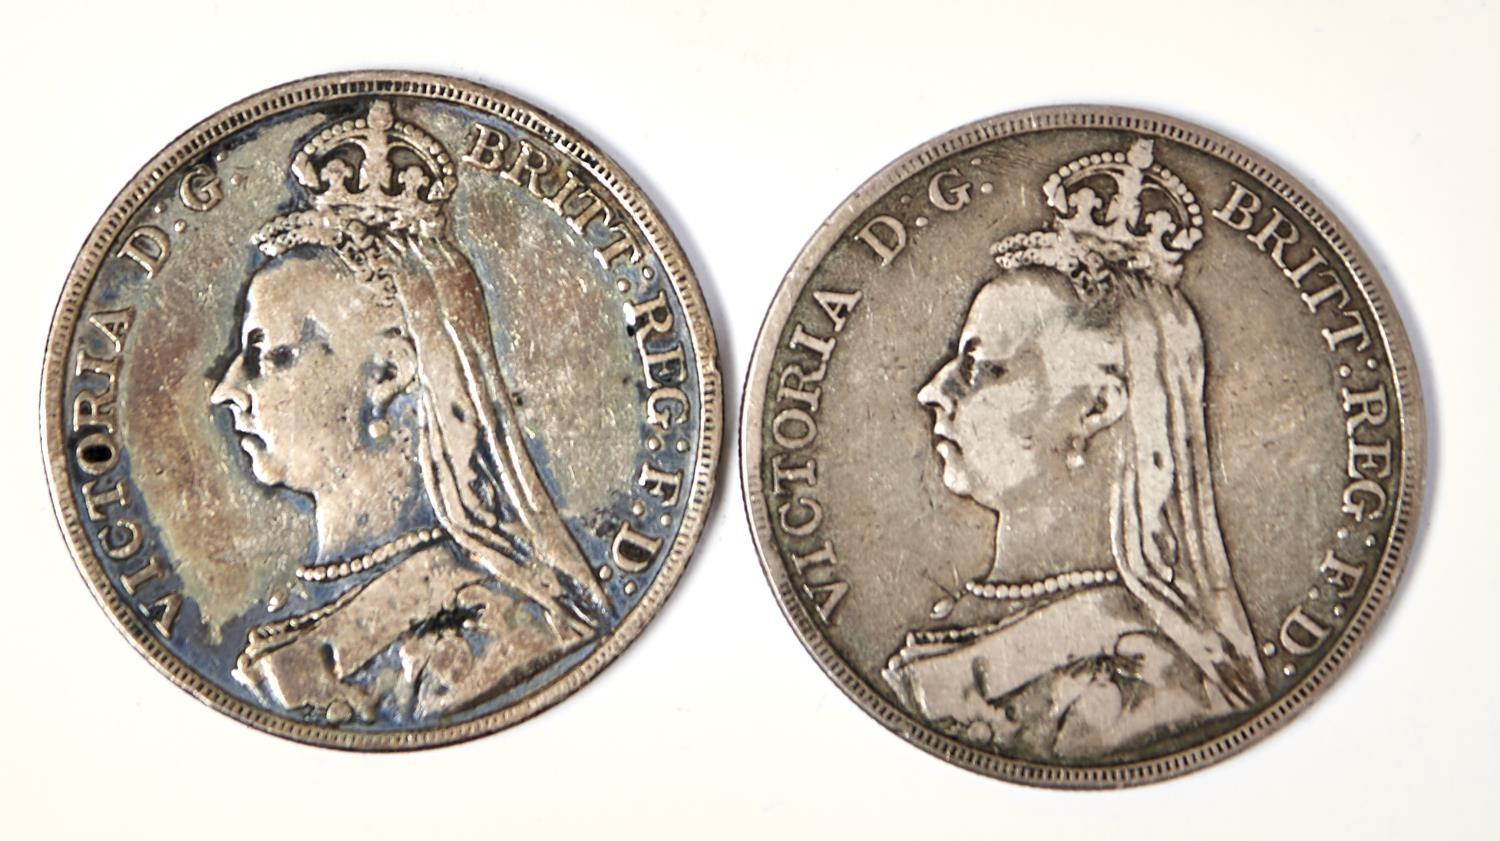 SILVER COINS.  CROWNS 1889 AND 1890